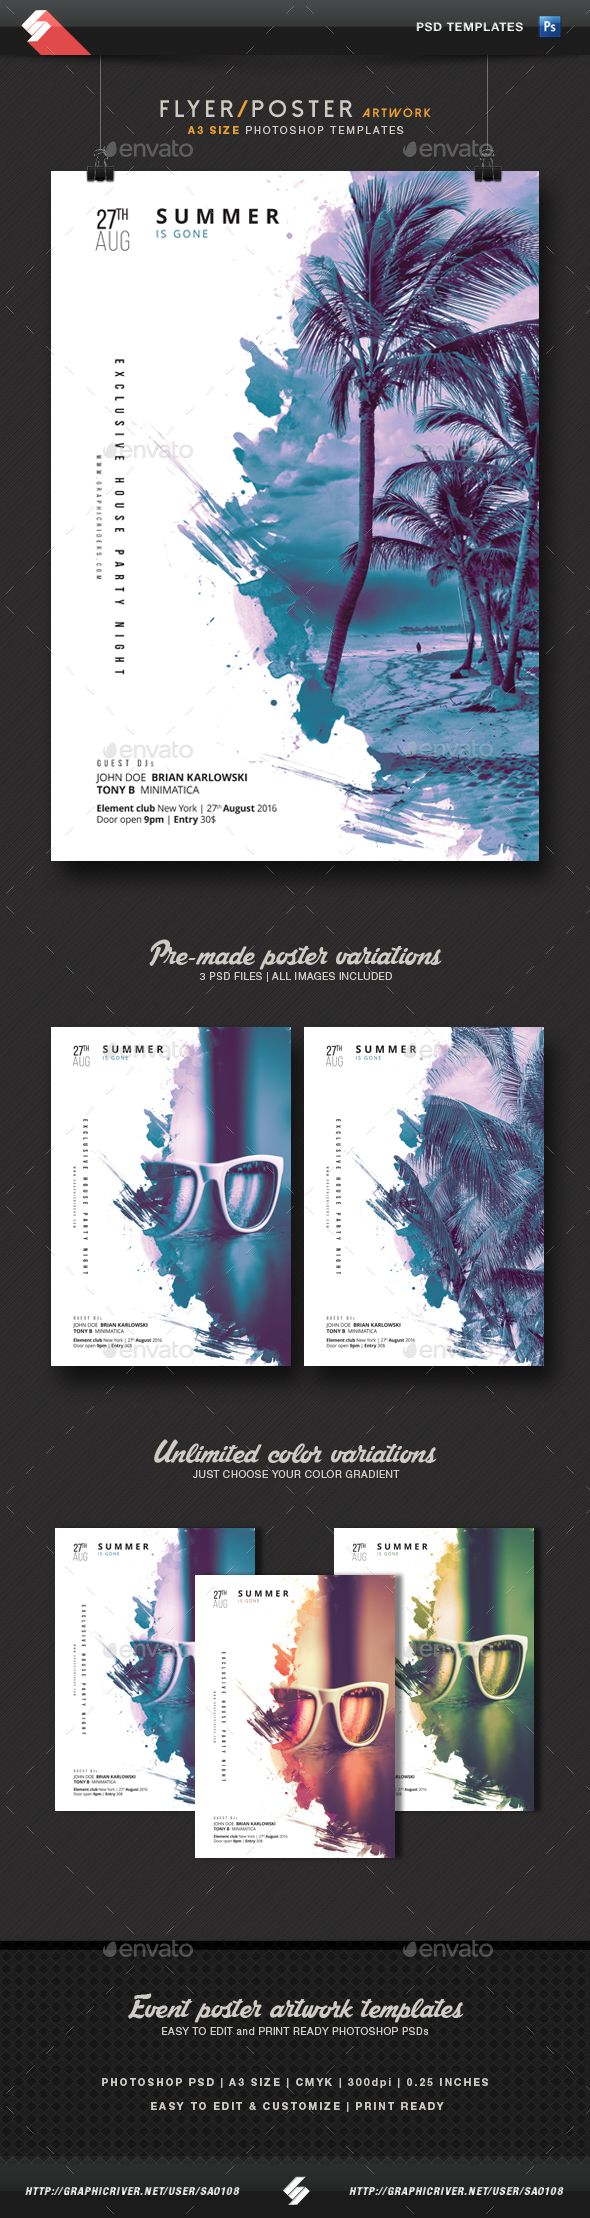 Summer Is Gone - Party Flyer / Poster Artwork  A3  PSD Template • Download ➝ https://graphicriver.net/item/summer-is-gone-party-flyer-poster-artwork-template-a3/17109879?ref=pxcr